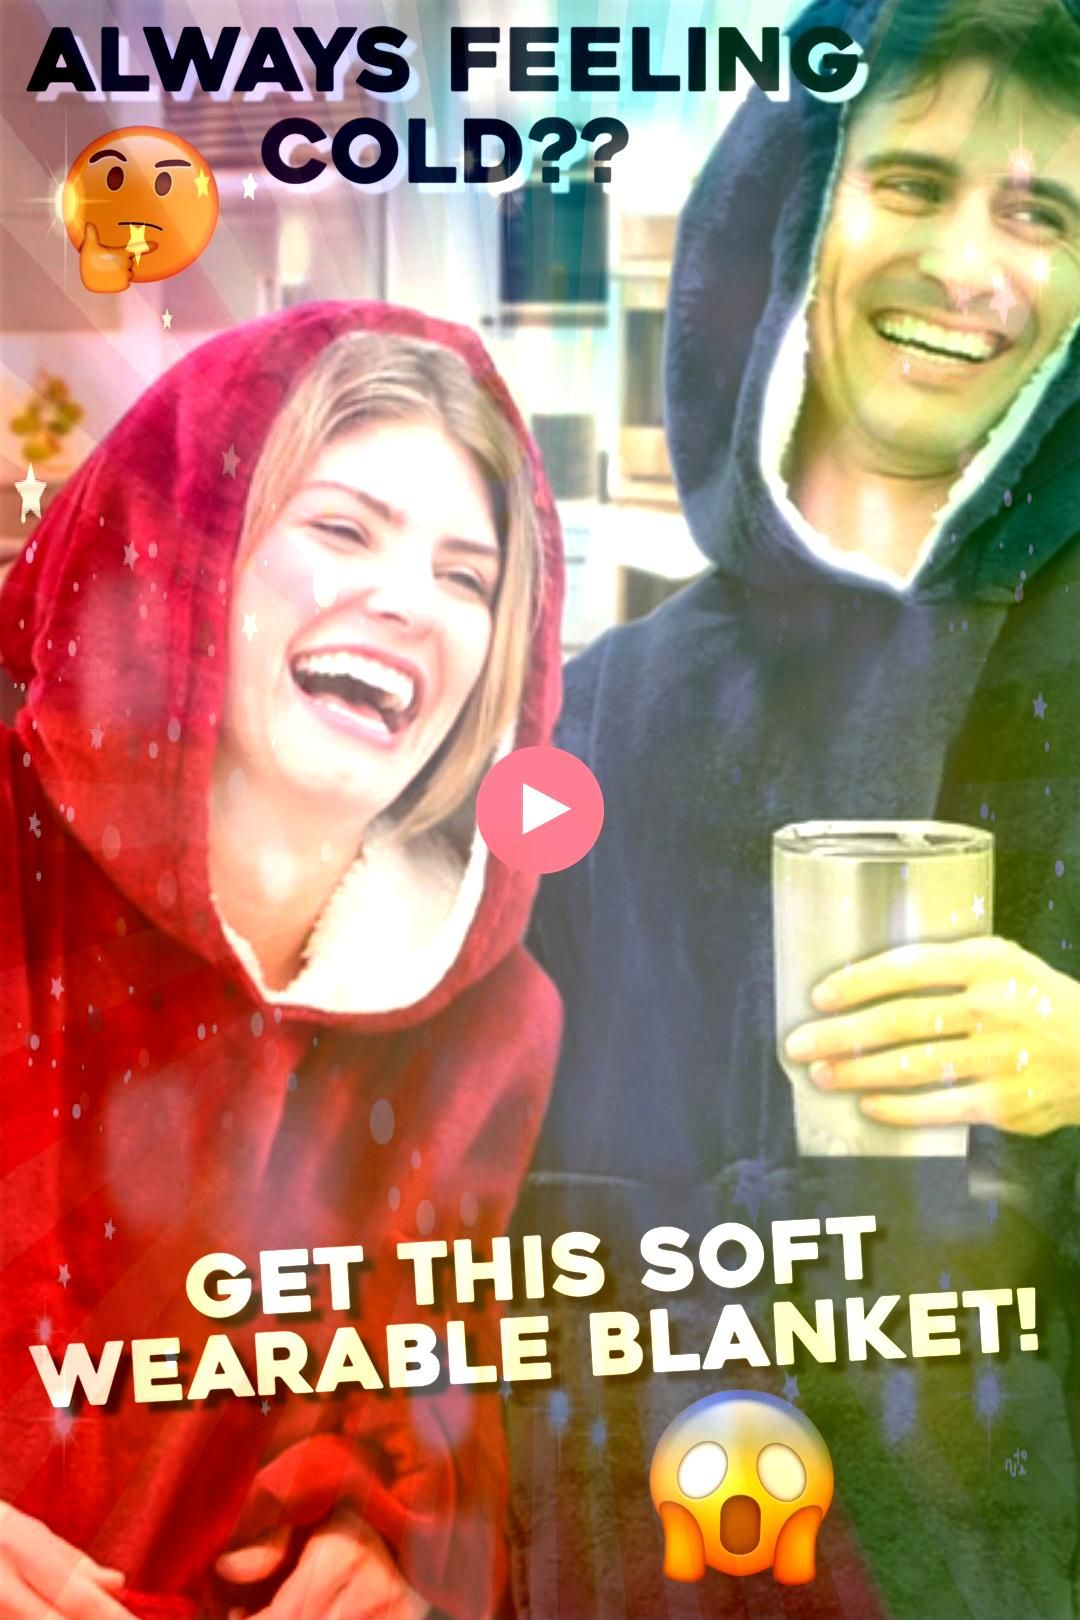 Blanket Get the bests outfit for chill nights game nights or just chilling with this amazing hoodieGet the bests outfit for chill nights game nights or just chilling with...